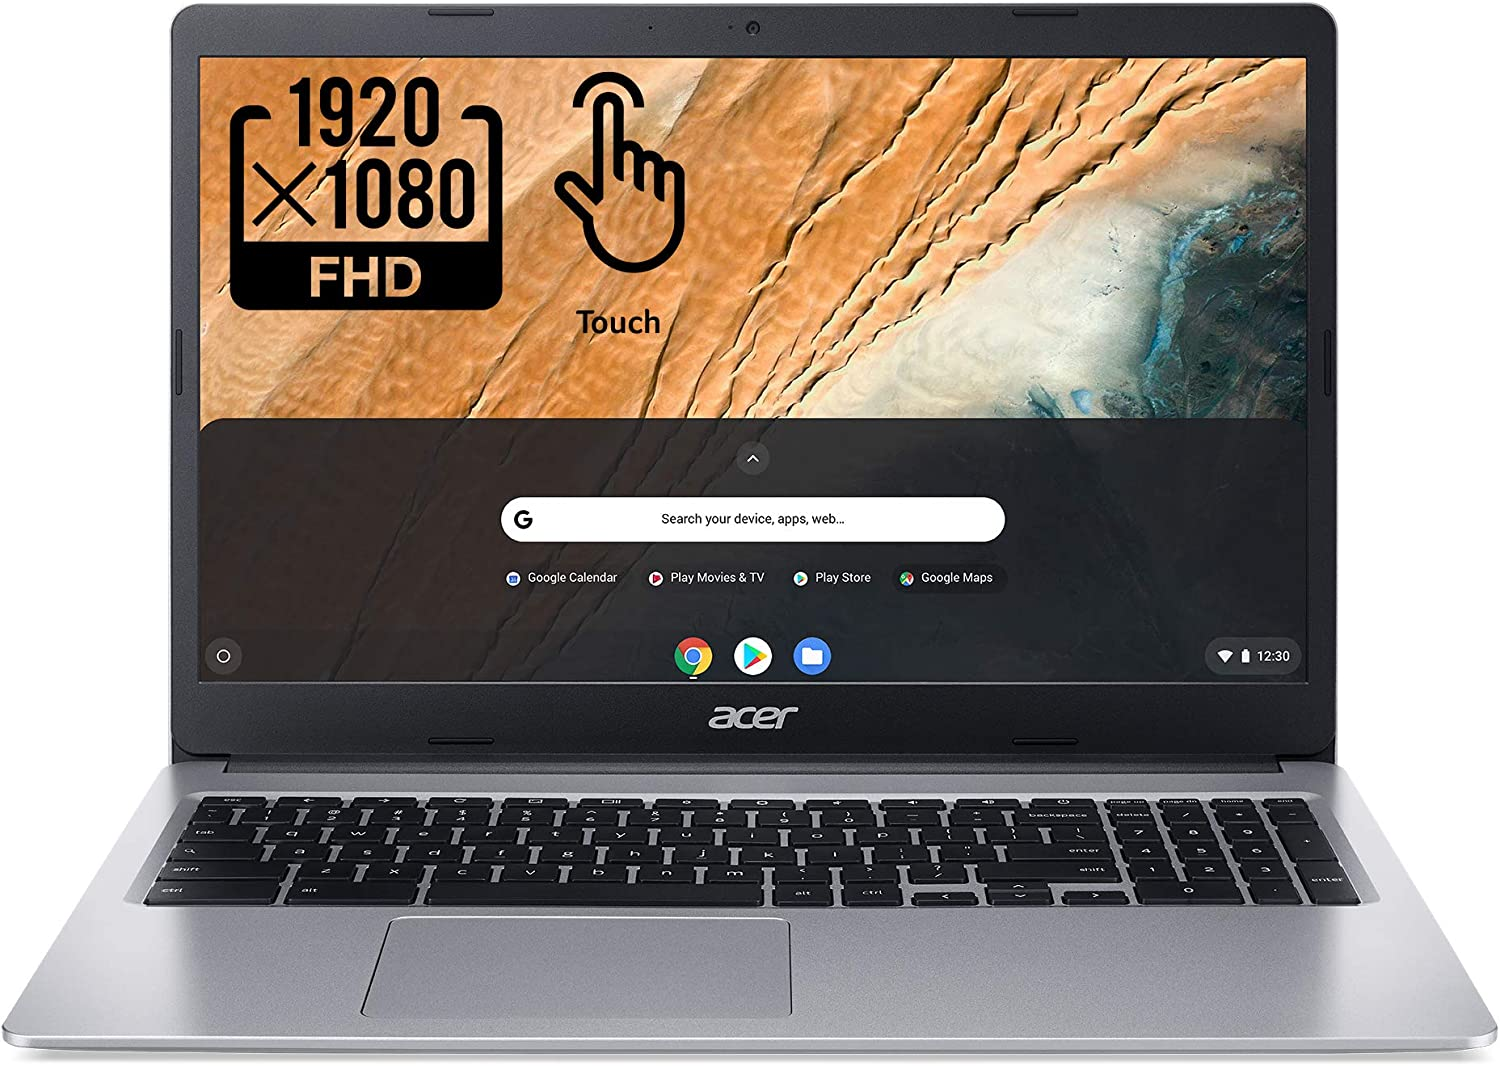 "2020 Acer Chromebook 315 15.6"" Full HD 1080p IPS Touchscreen Laptop PC, Intel Celeron N4020 Dual-Core Processor, 4GB DDR4 RAM, 64GB eMMC, Webcam, WiFi, 12 Hrs Battery Life, Chrome OS, Platinum Gray"